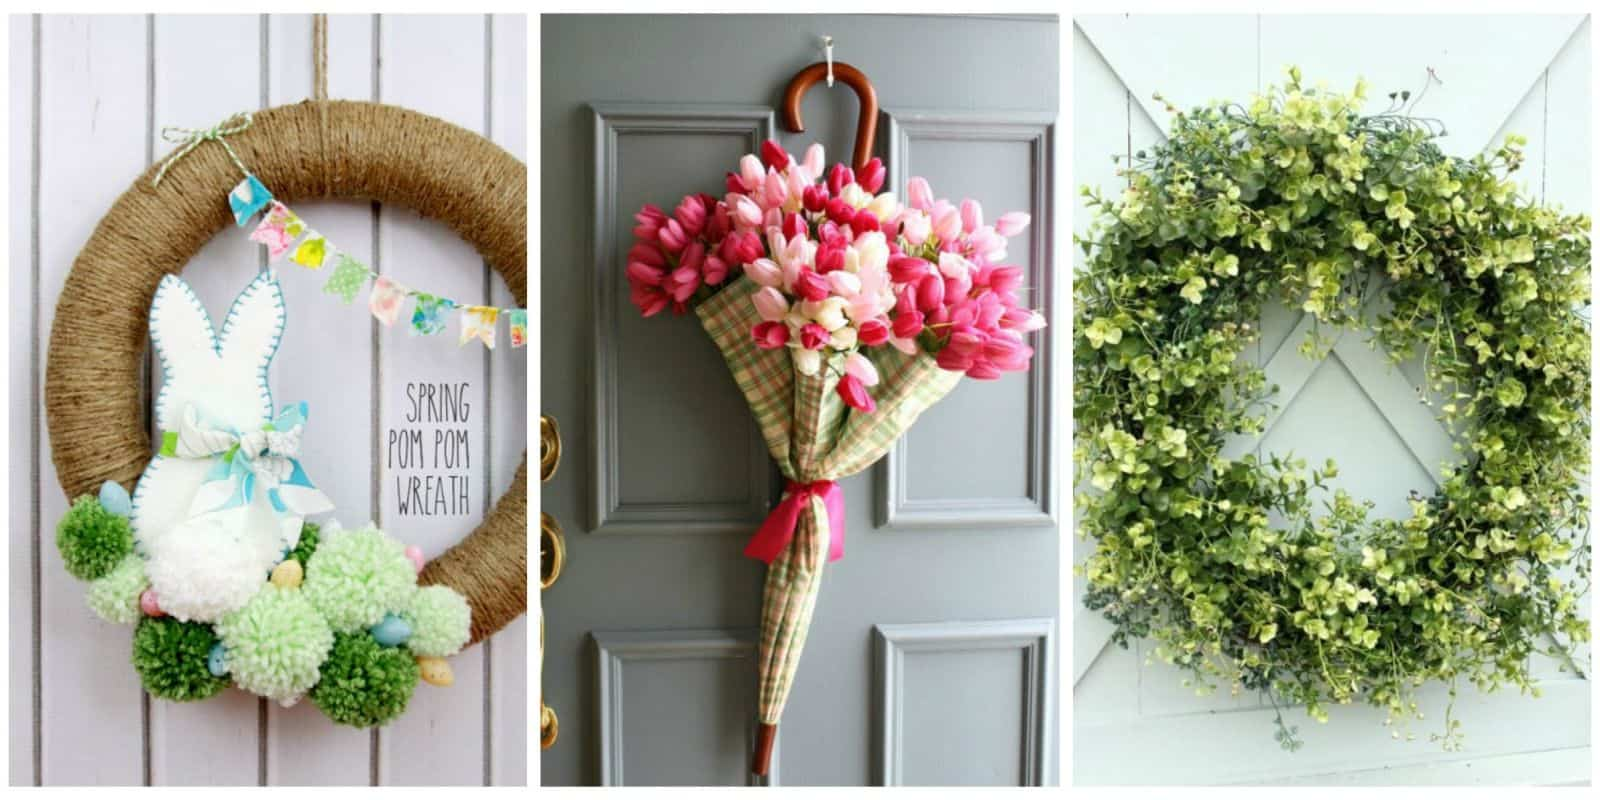 Delicieux CountryLiving: 18 DIY Wreaths To Dress Up Your Door This Spring